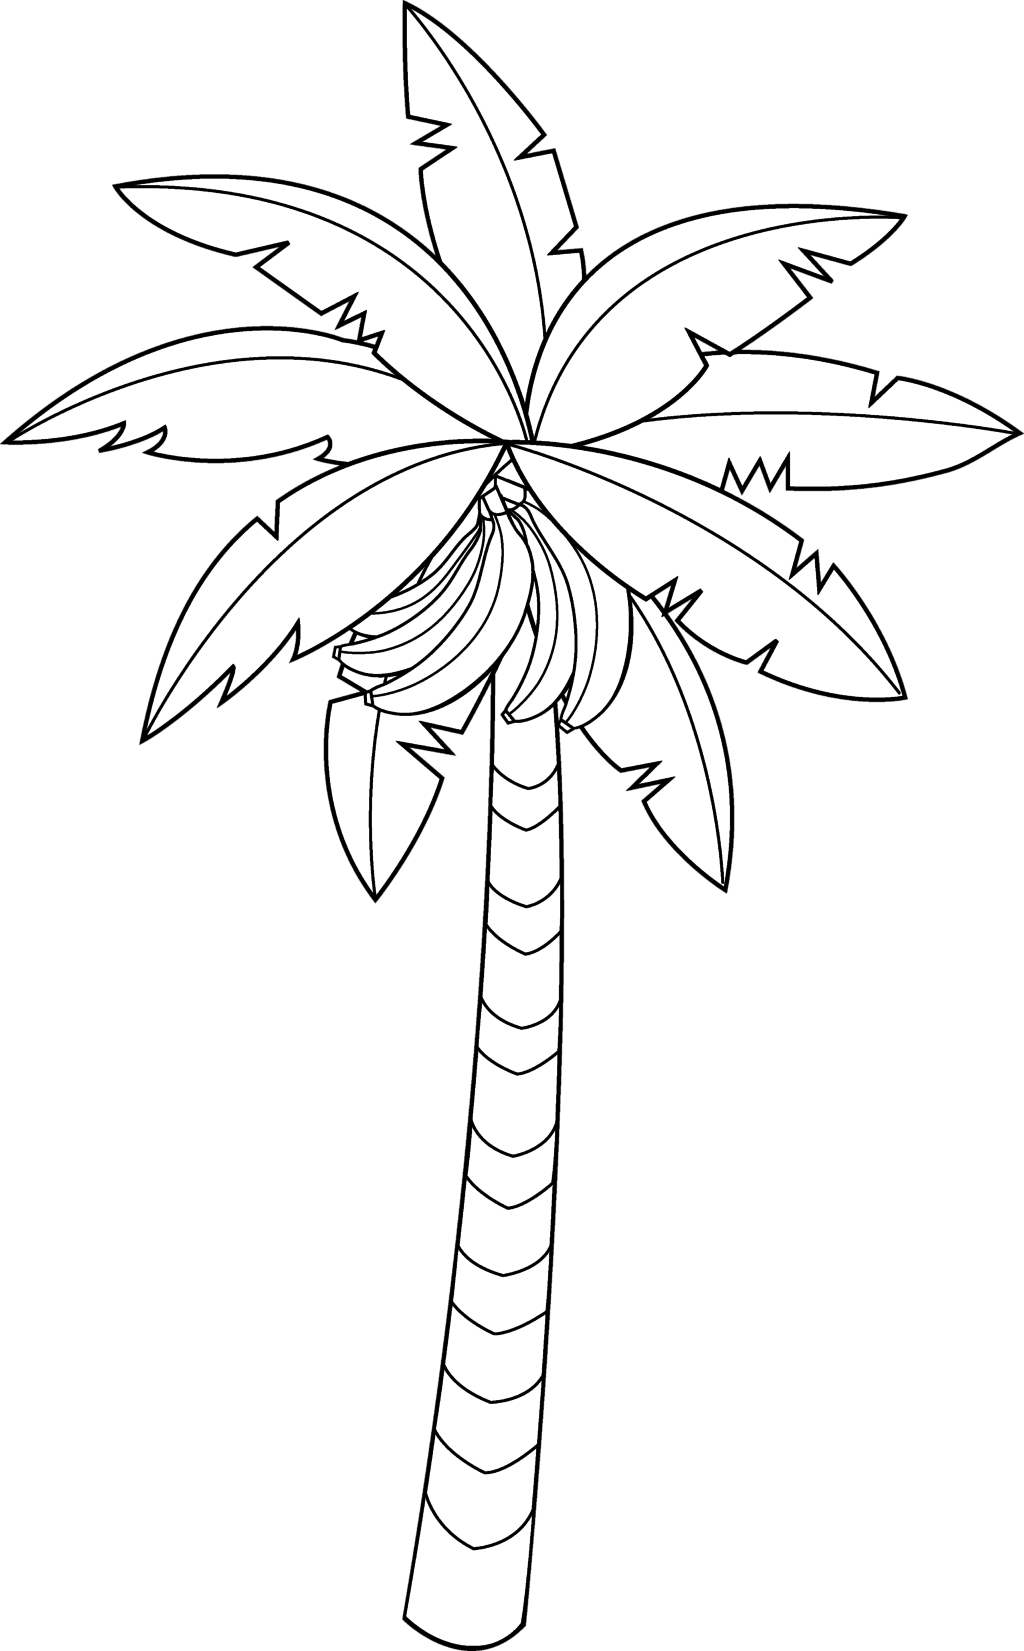 Tree clipart banana. Coloring pictures of bananas